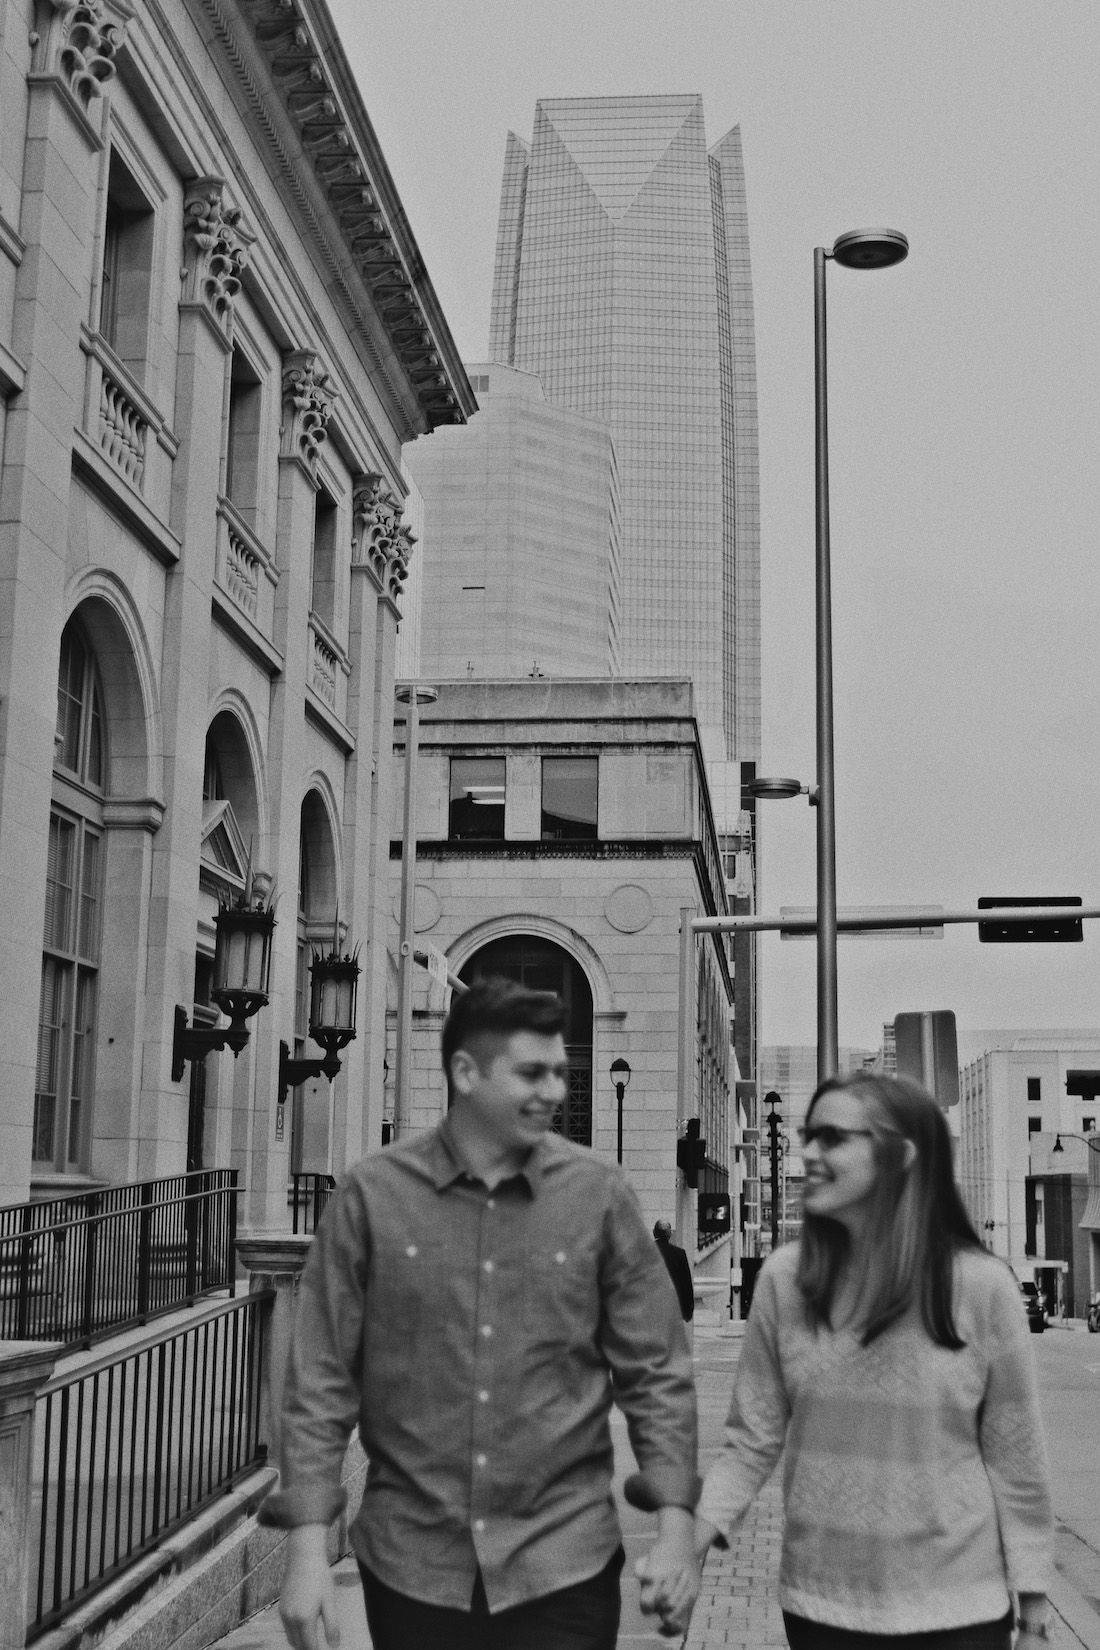 Downtown engagement photos black and white oklahoma city engagement photos classic engagement photos oklahoma photographer california photographer